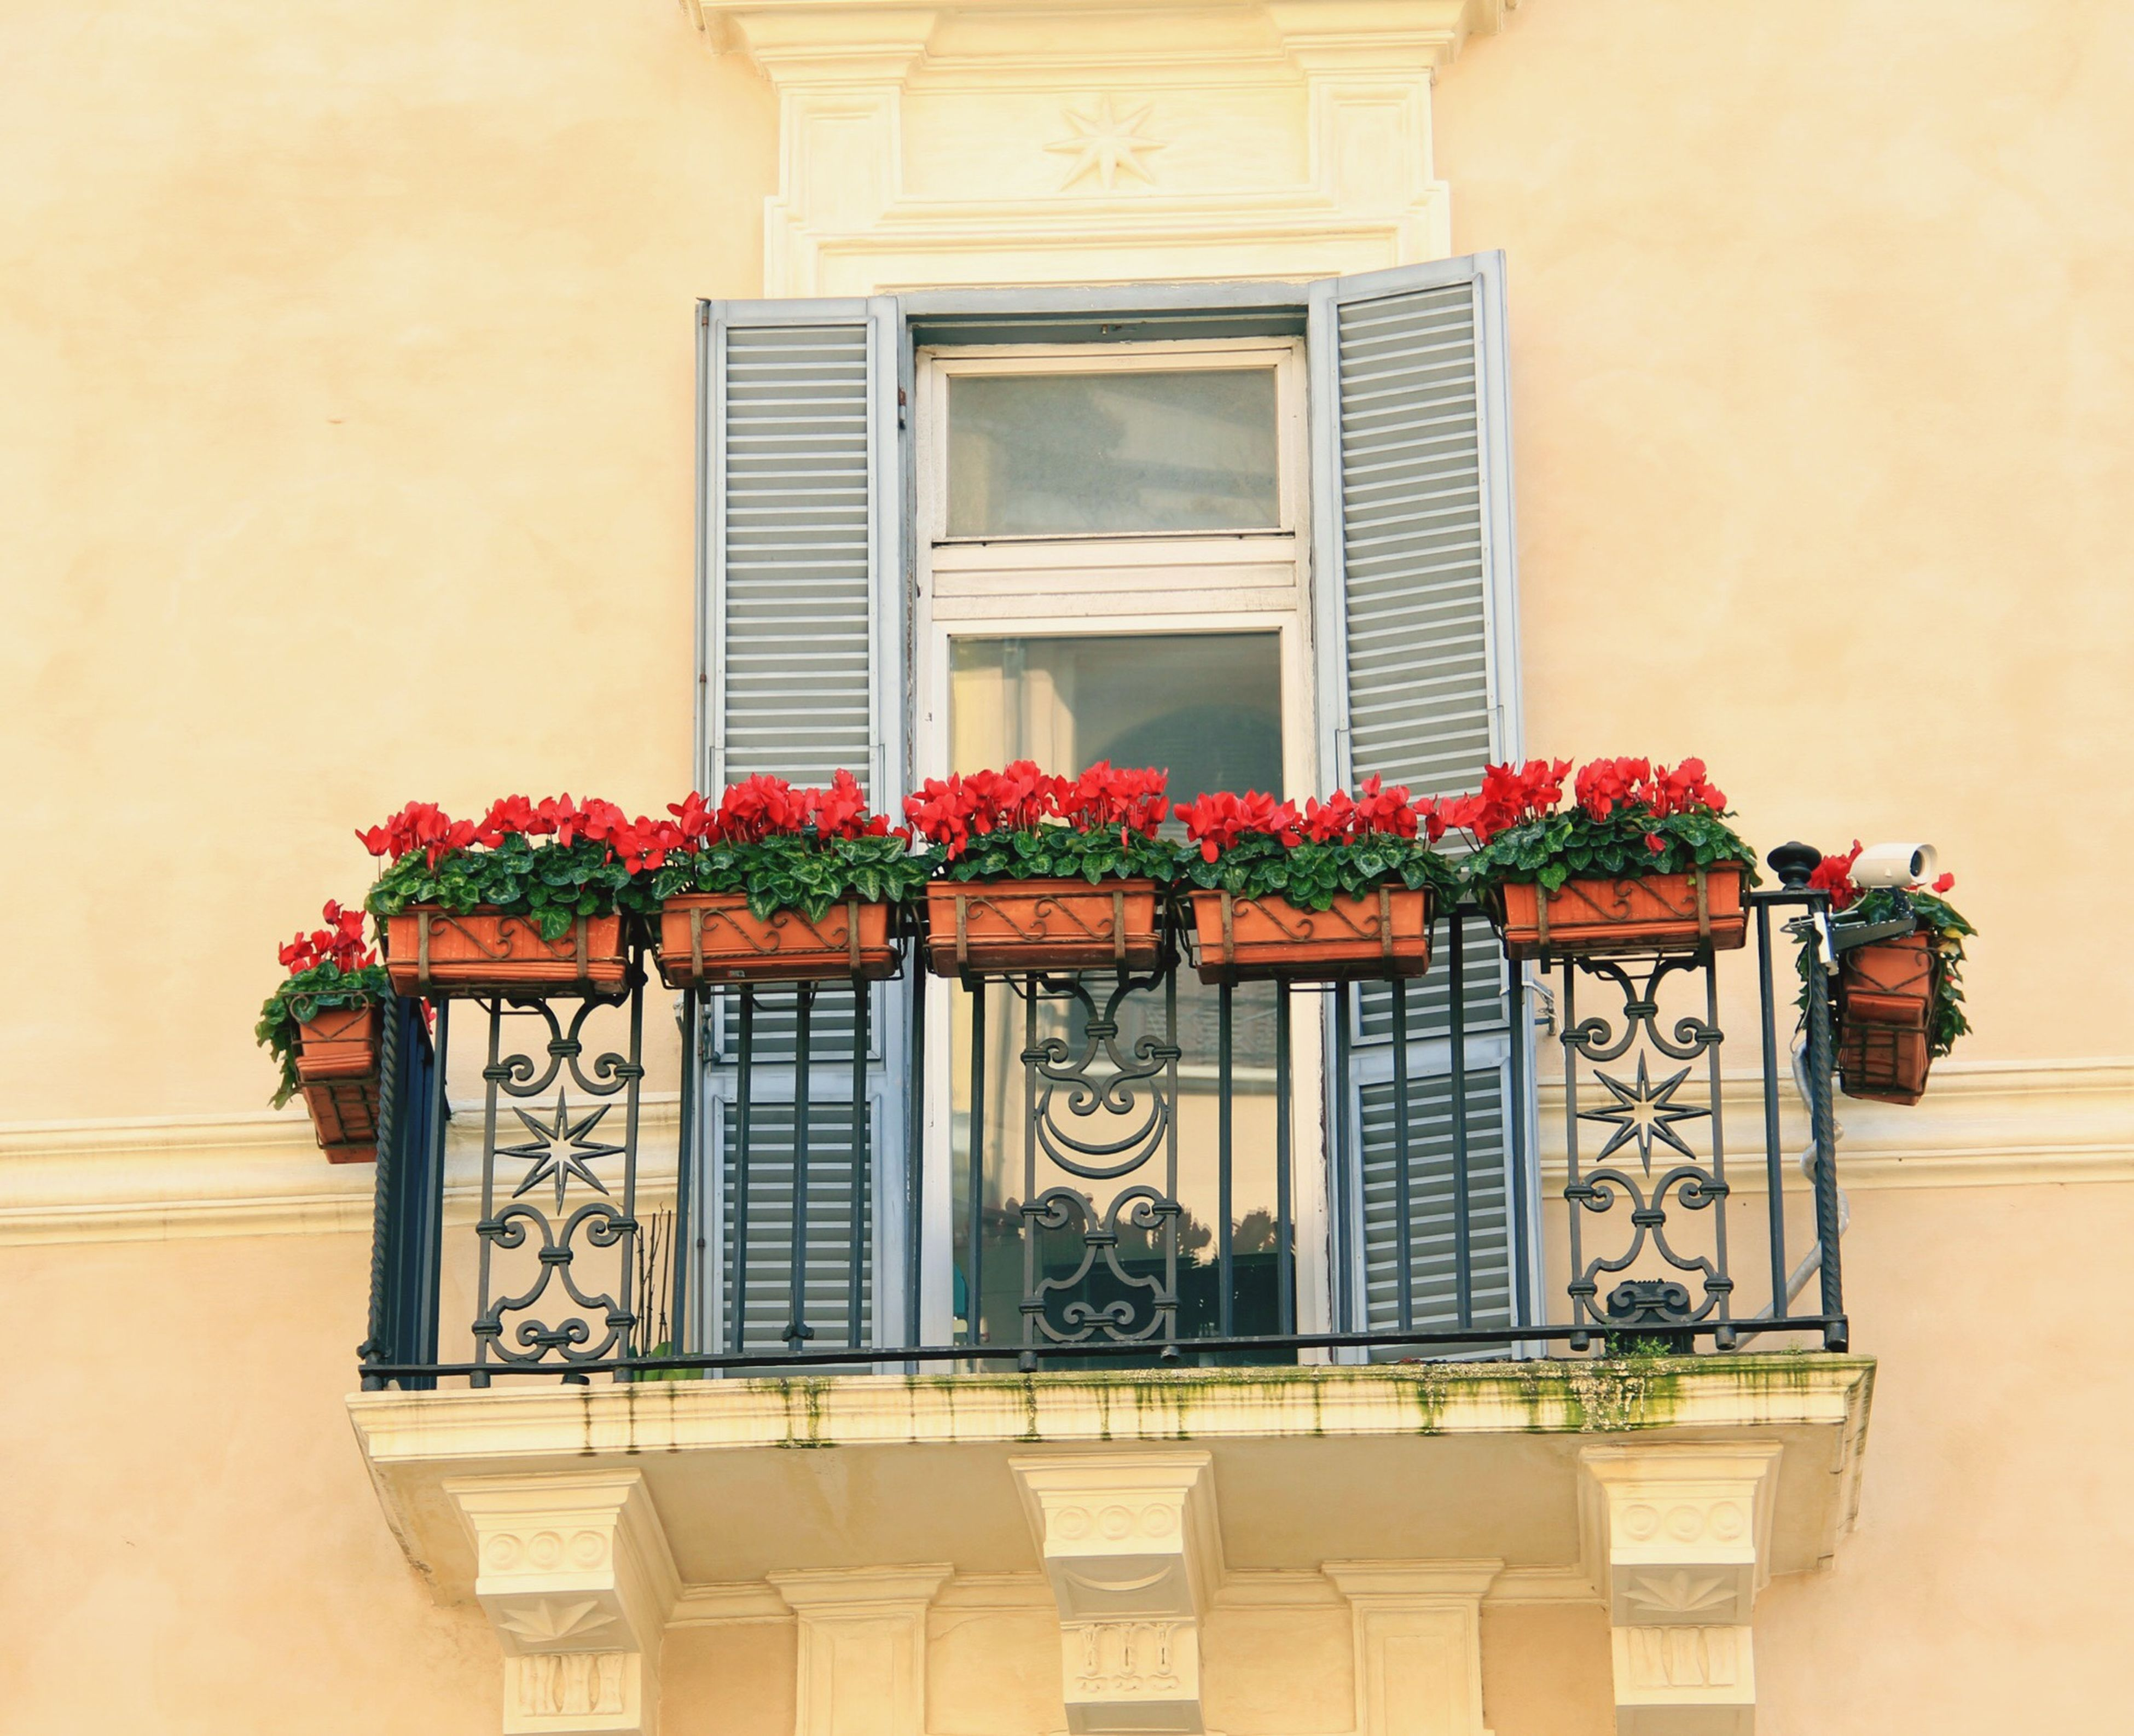 building exterior, architecture, window, built structure, potted plant, house, flower, residential building, red, plant, growth, residential structure, low angle view, closed, door, balcony, flower pot, glass - material, day, no people